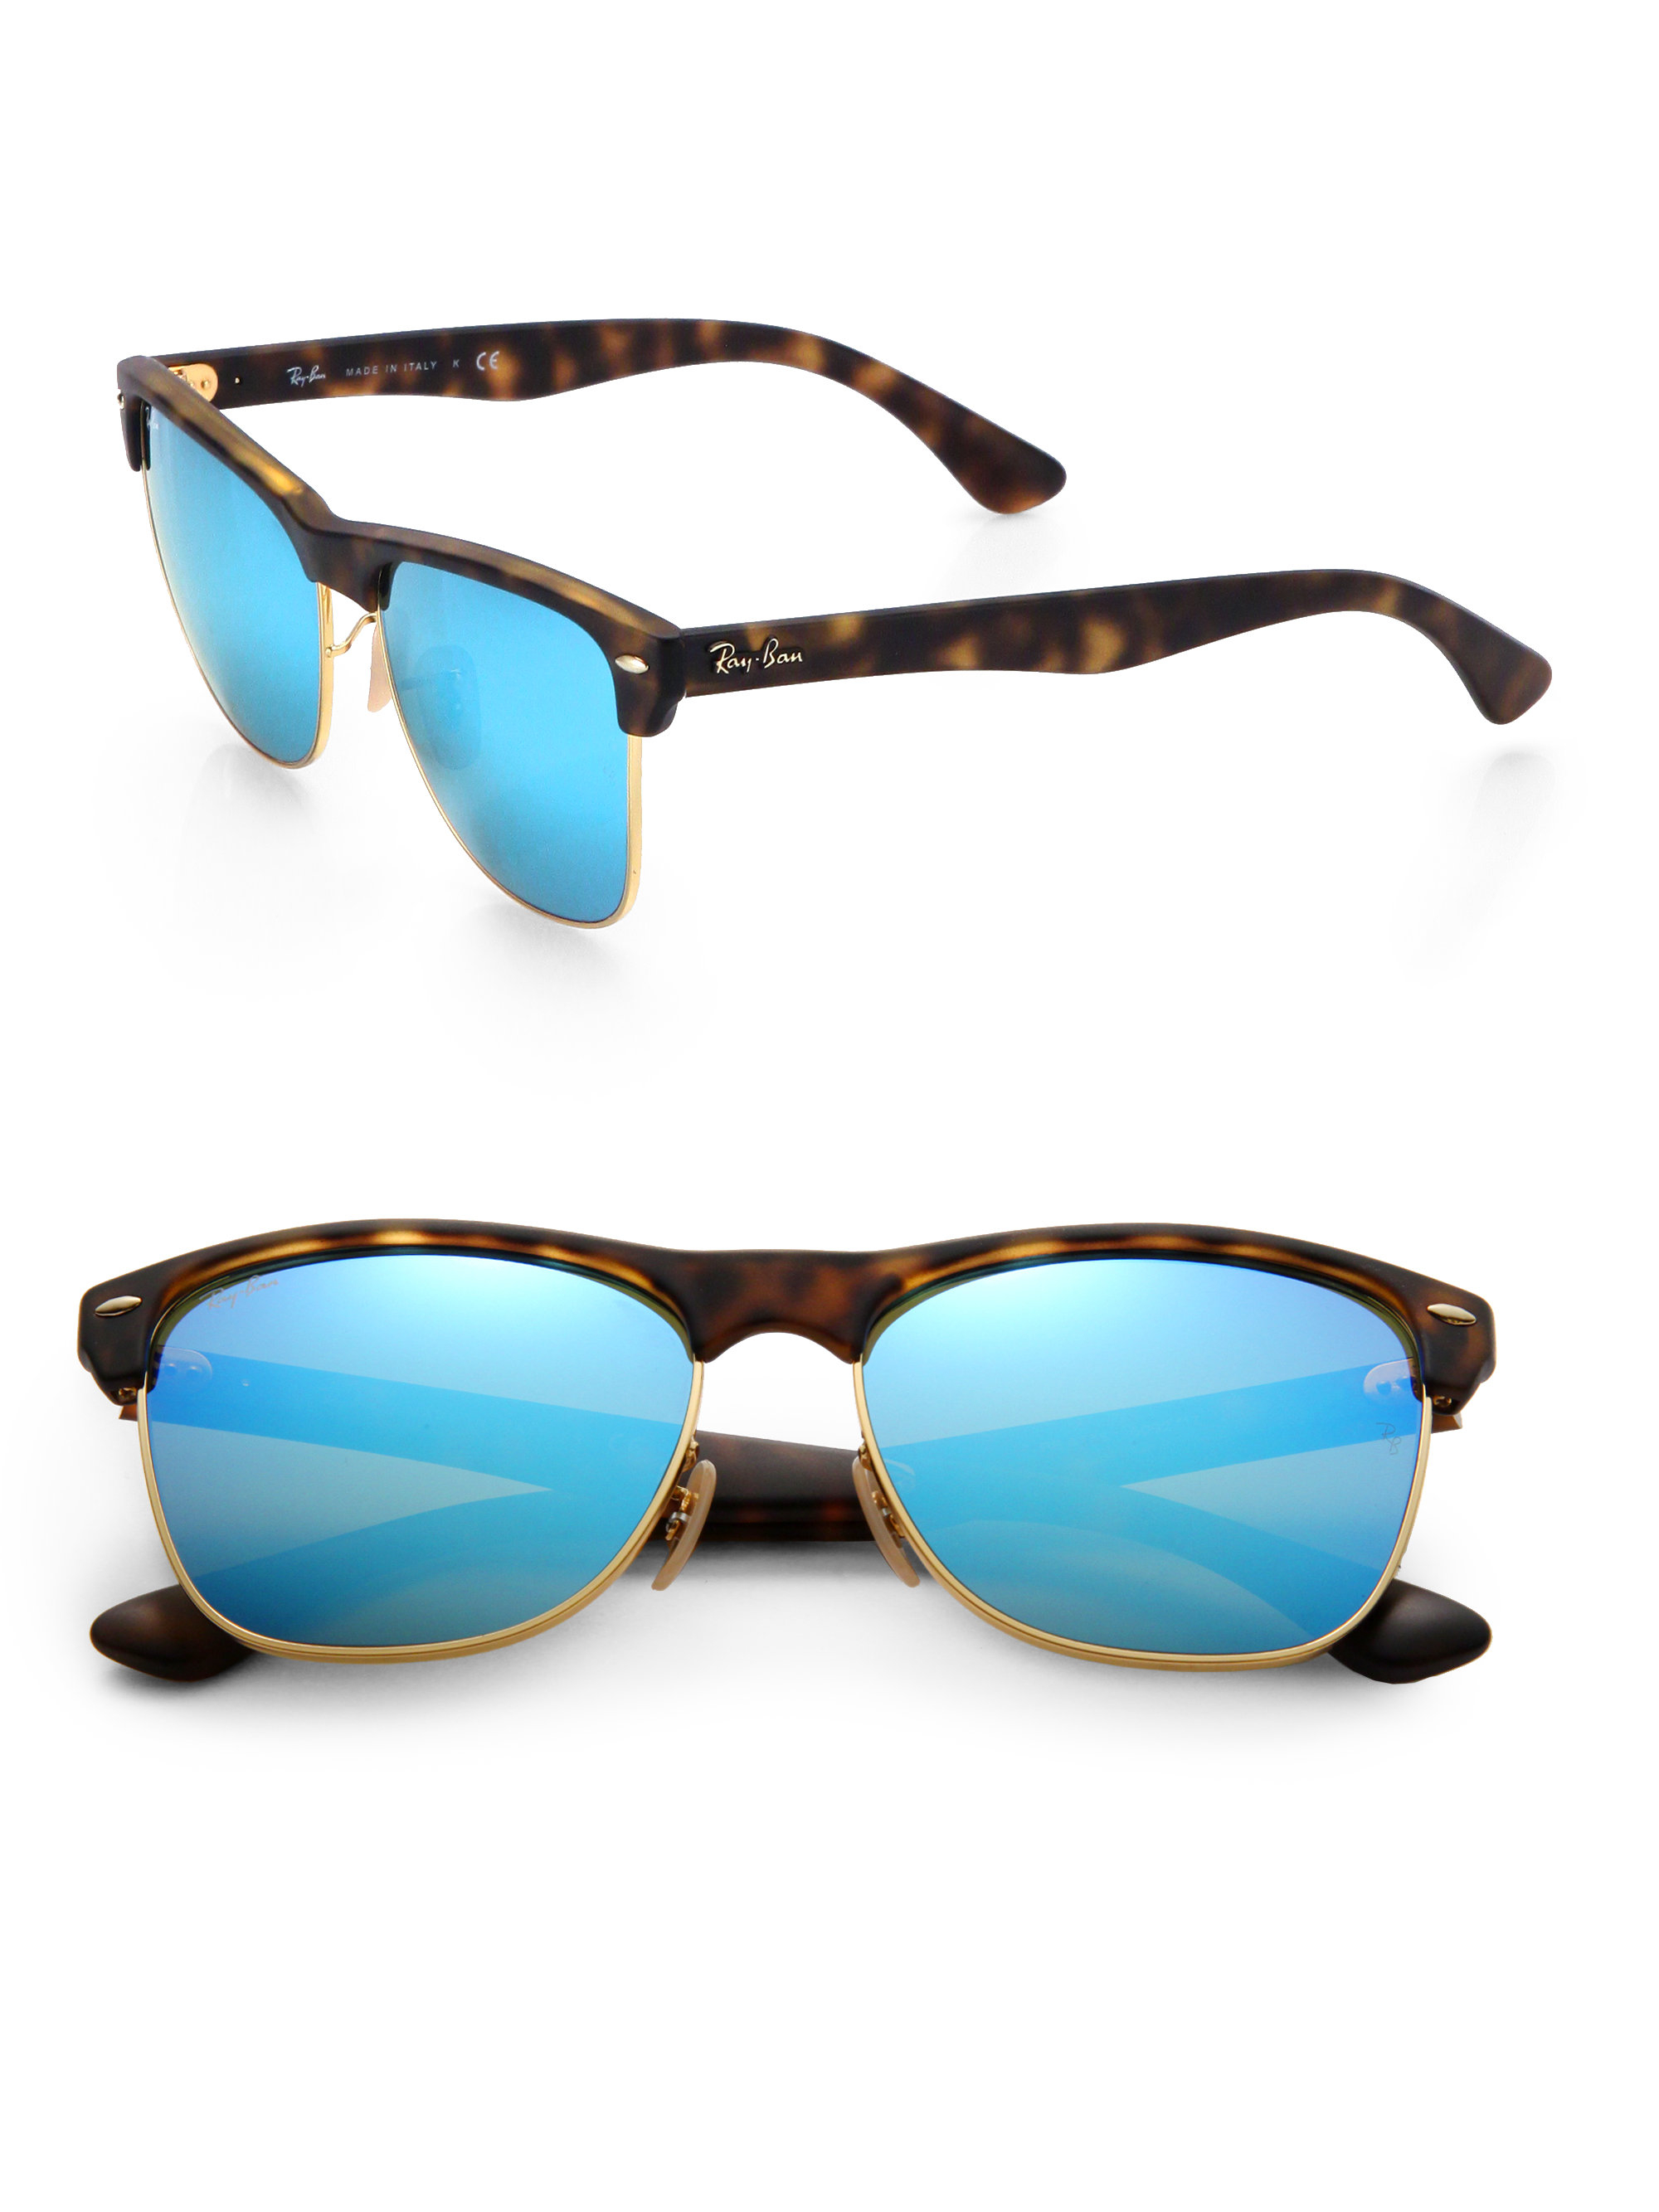 dcf44561b Gallery. Previously sold at: Saks Fifth Avenue · Men's Mirrored Sunglasses  Men's Ray Ban Clubmaster